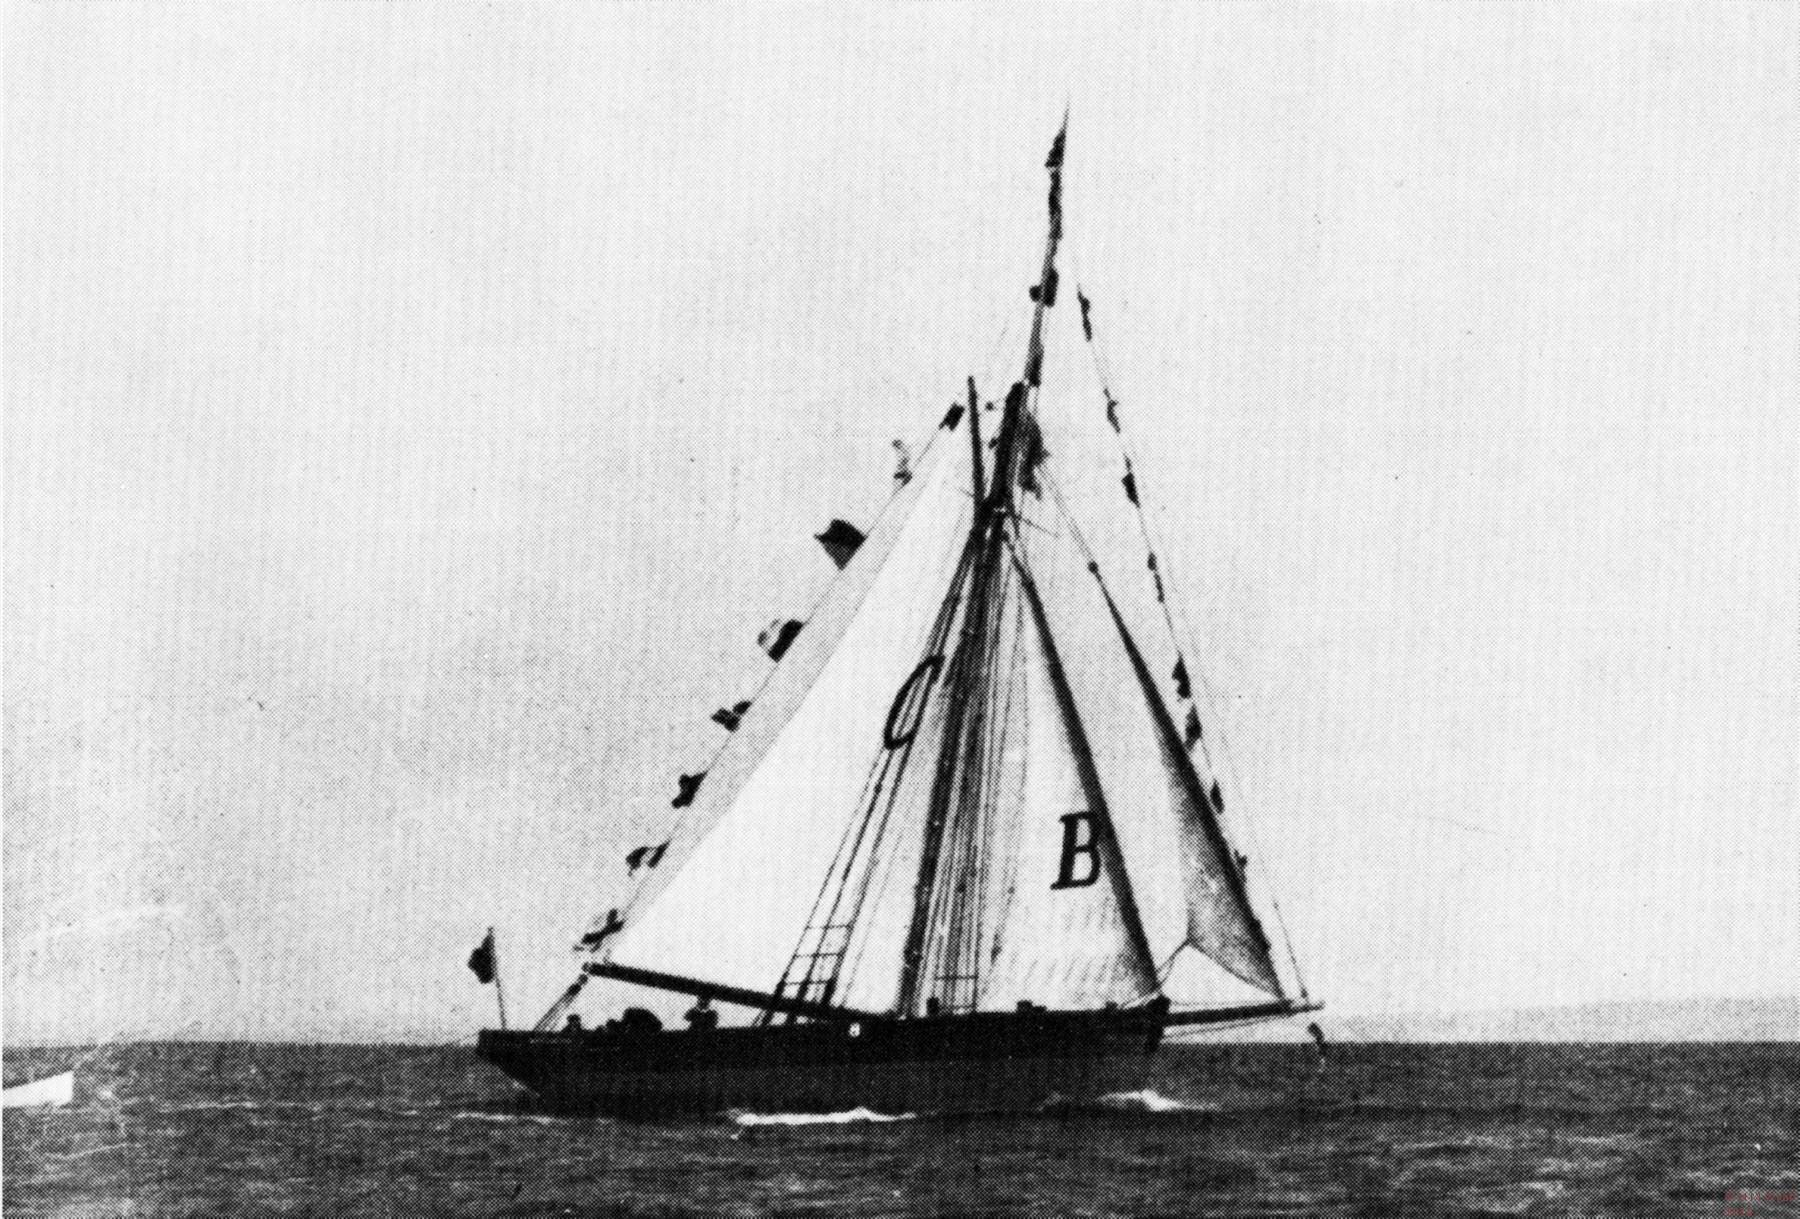 The Bristol Channel Pilot Cutter Marguerite